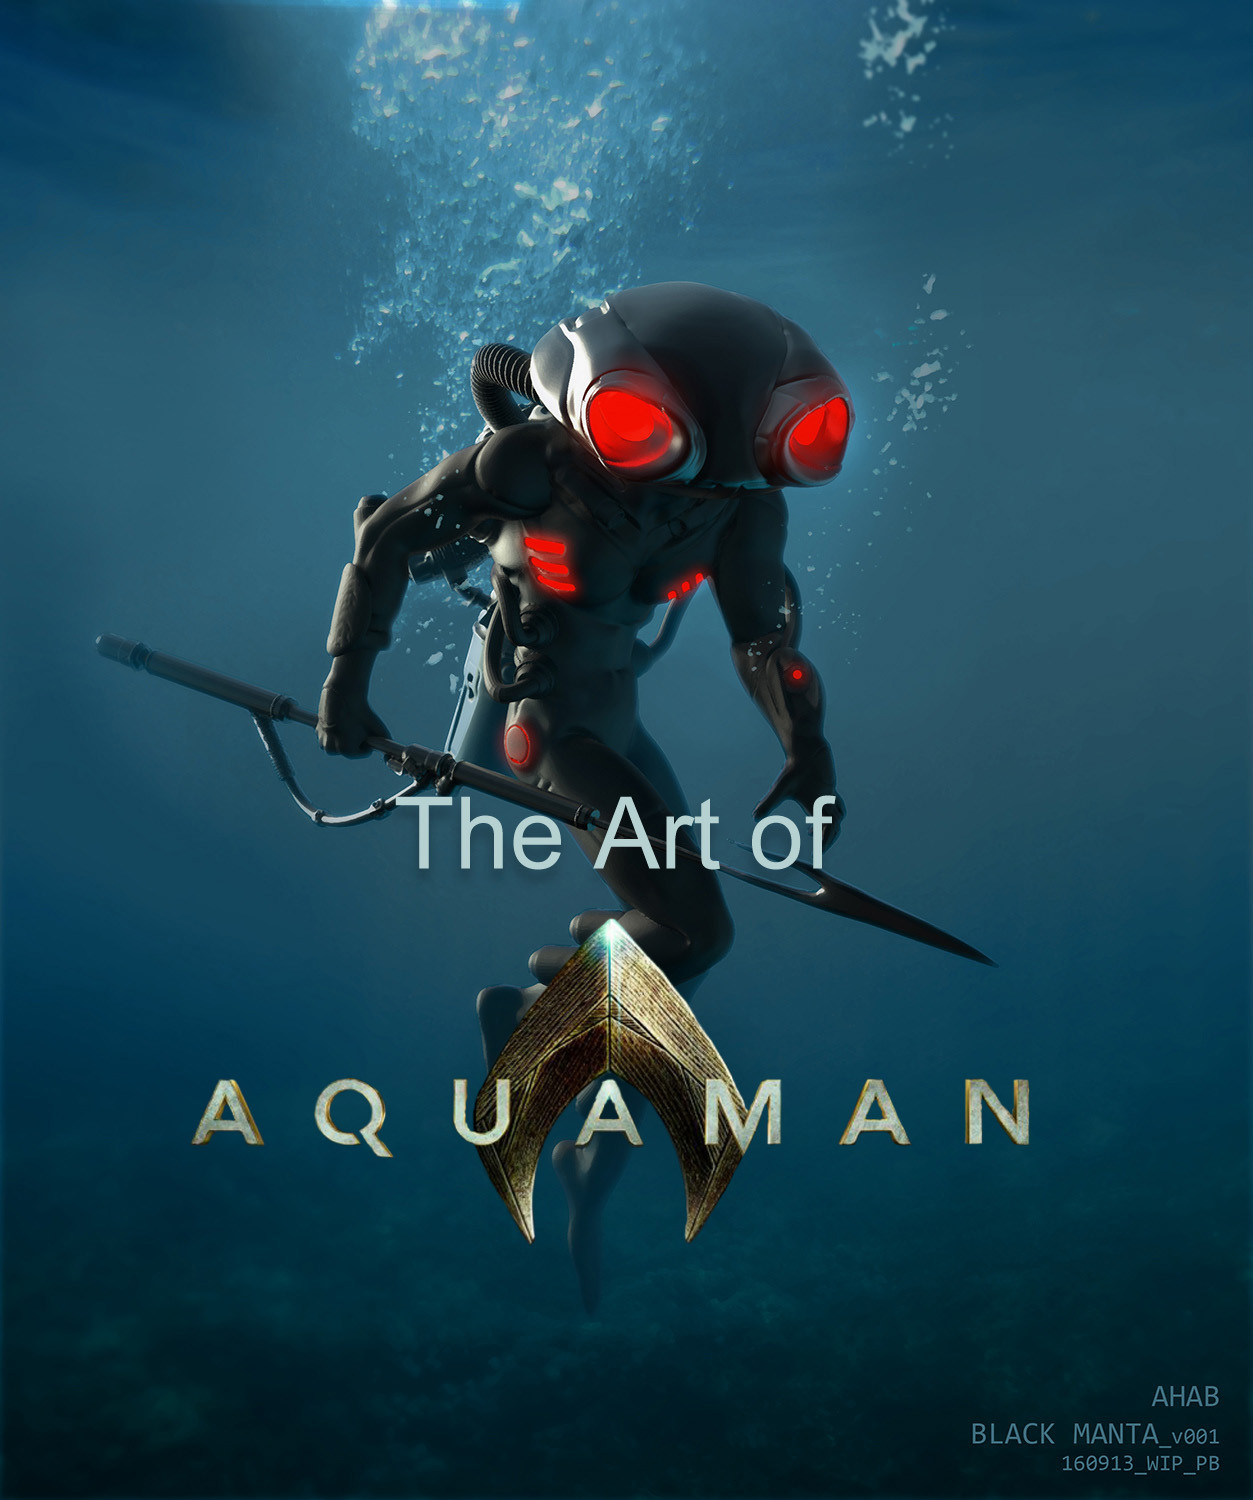 The Art Of Aquaman